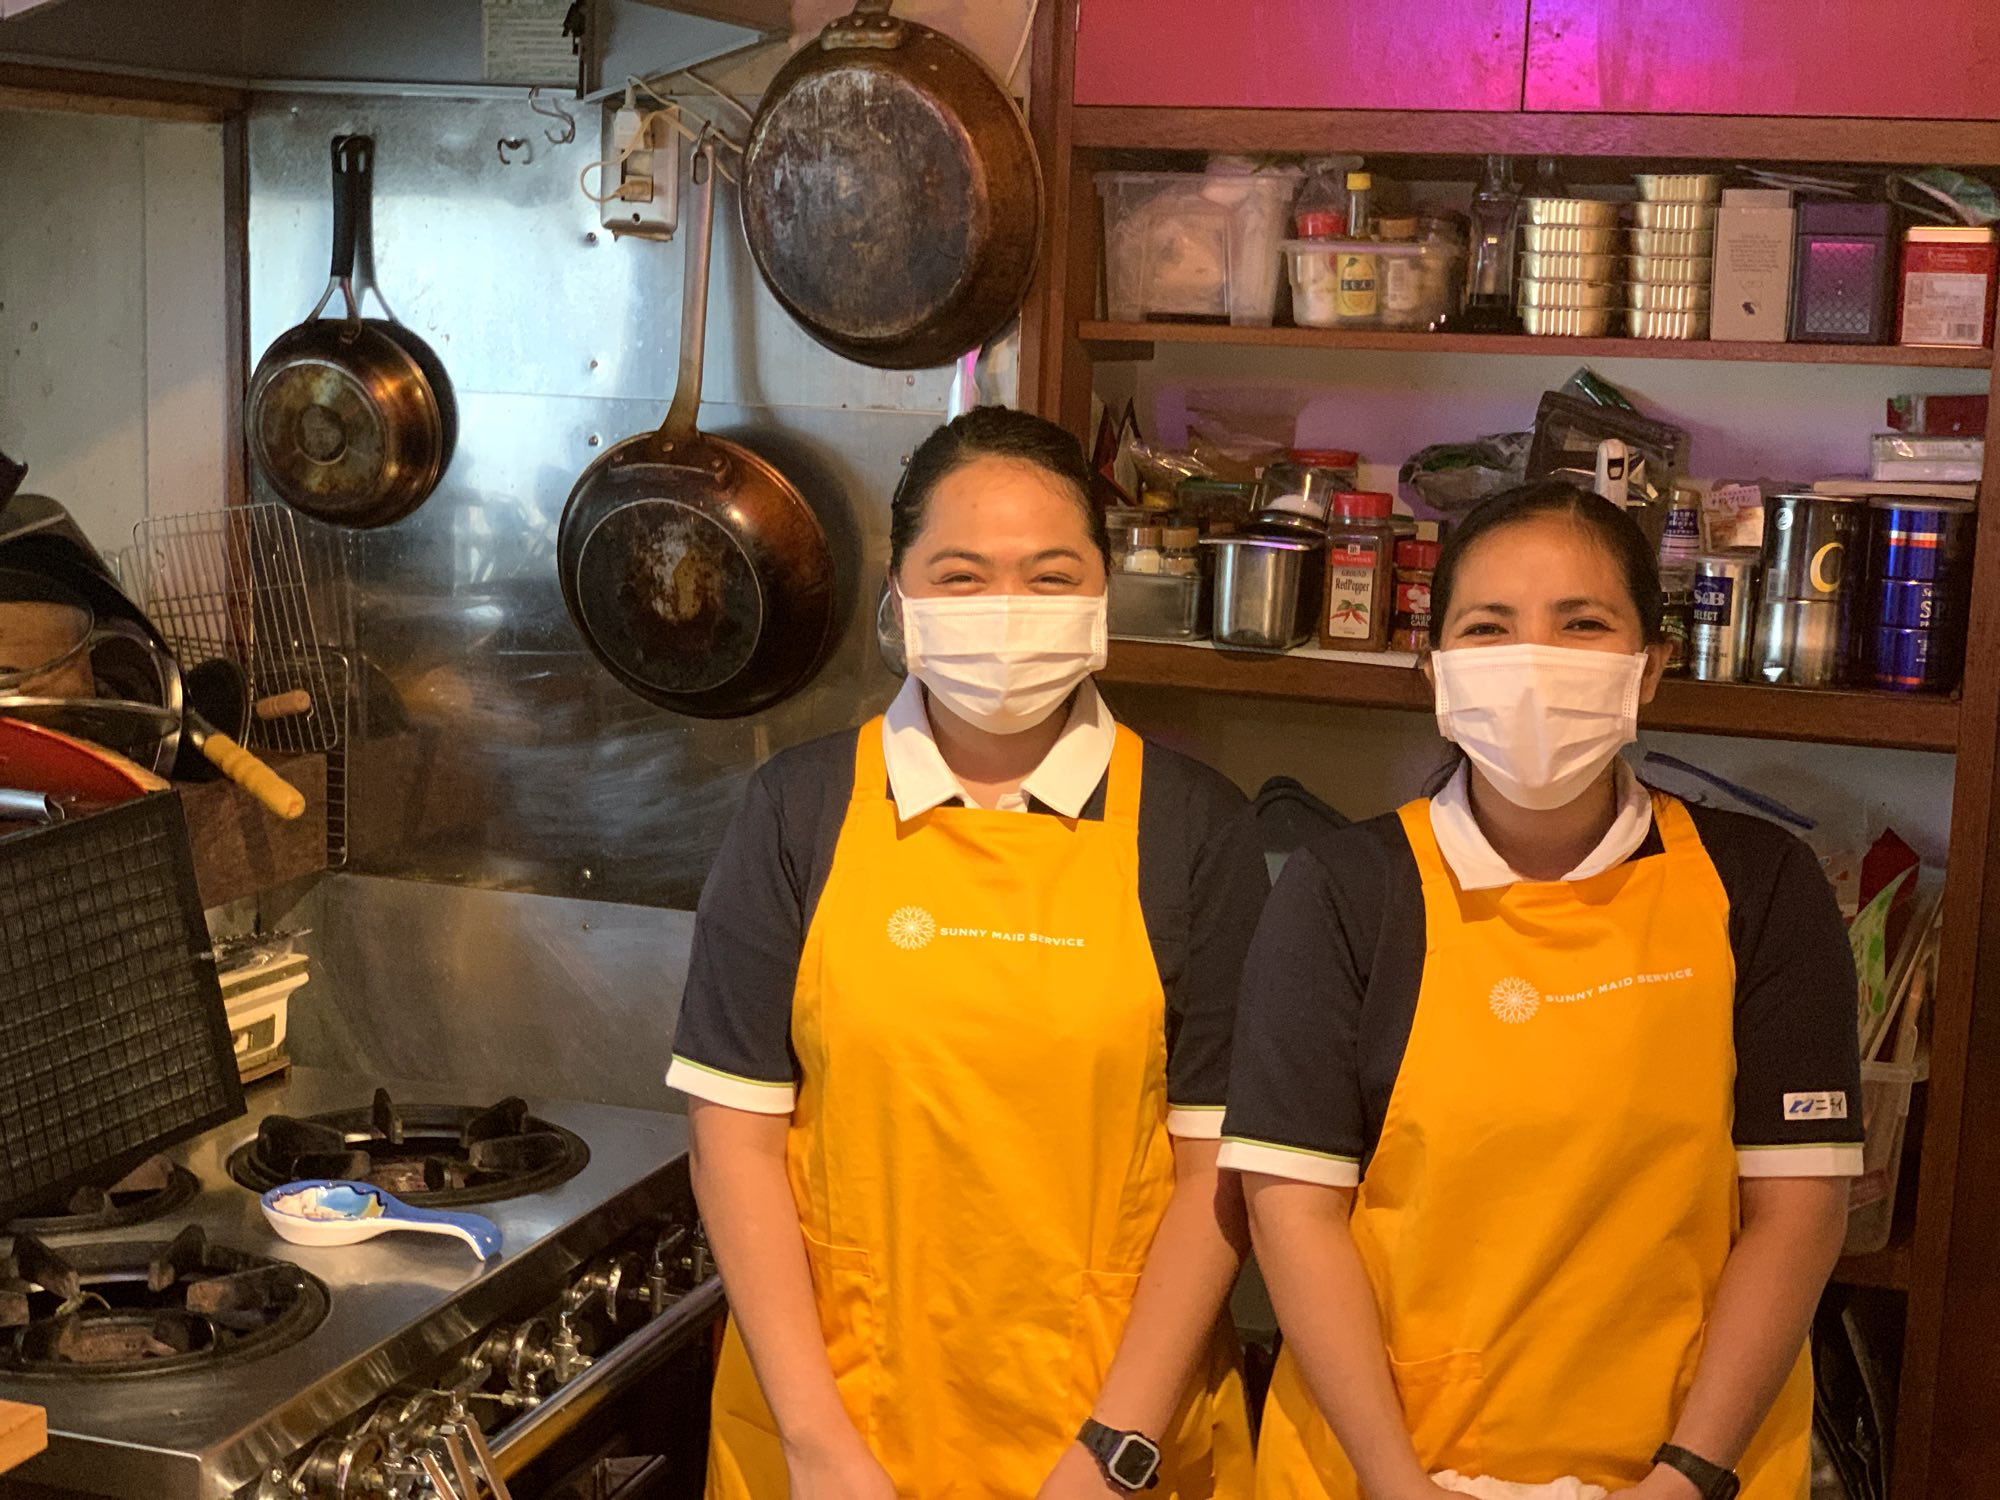 Sunny Maid Services maids smiling in the kitchen